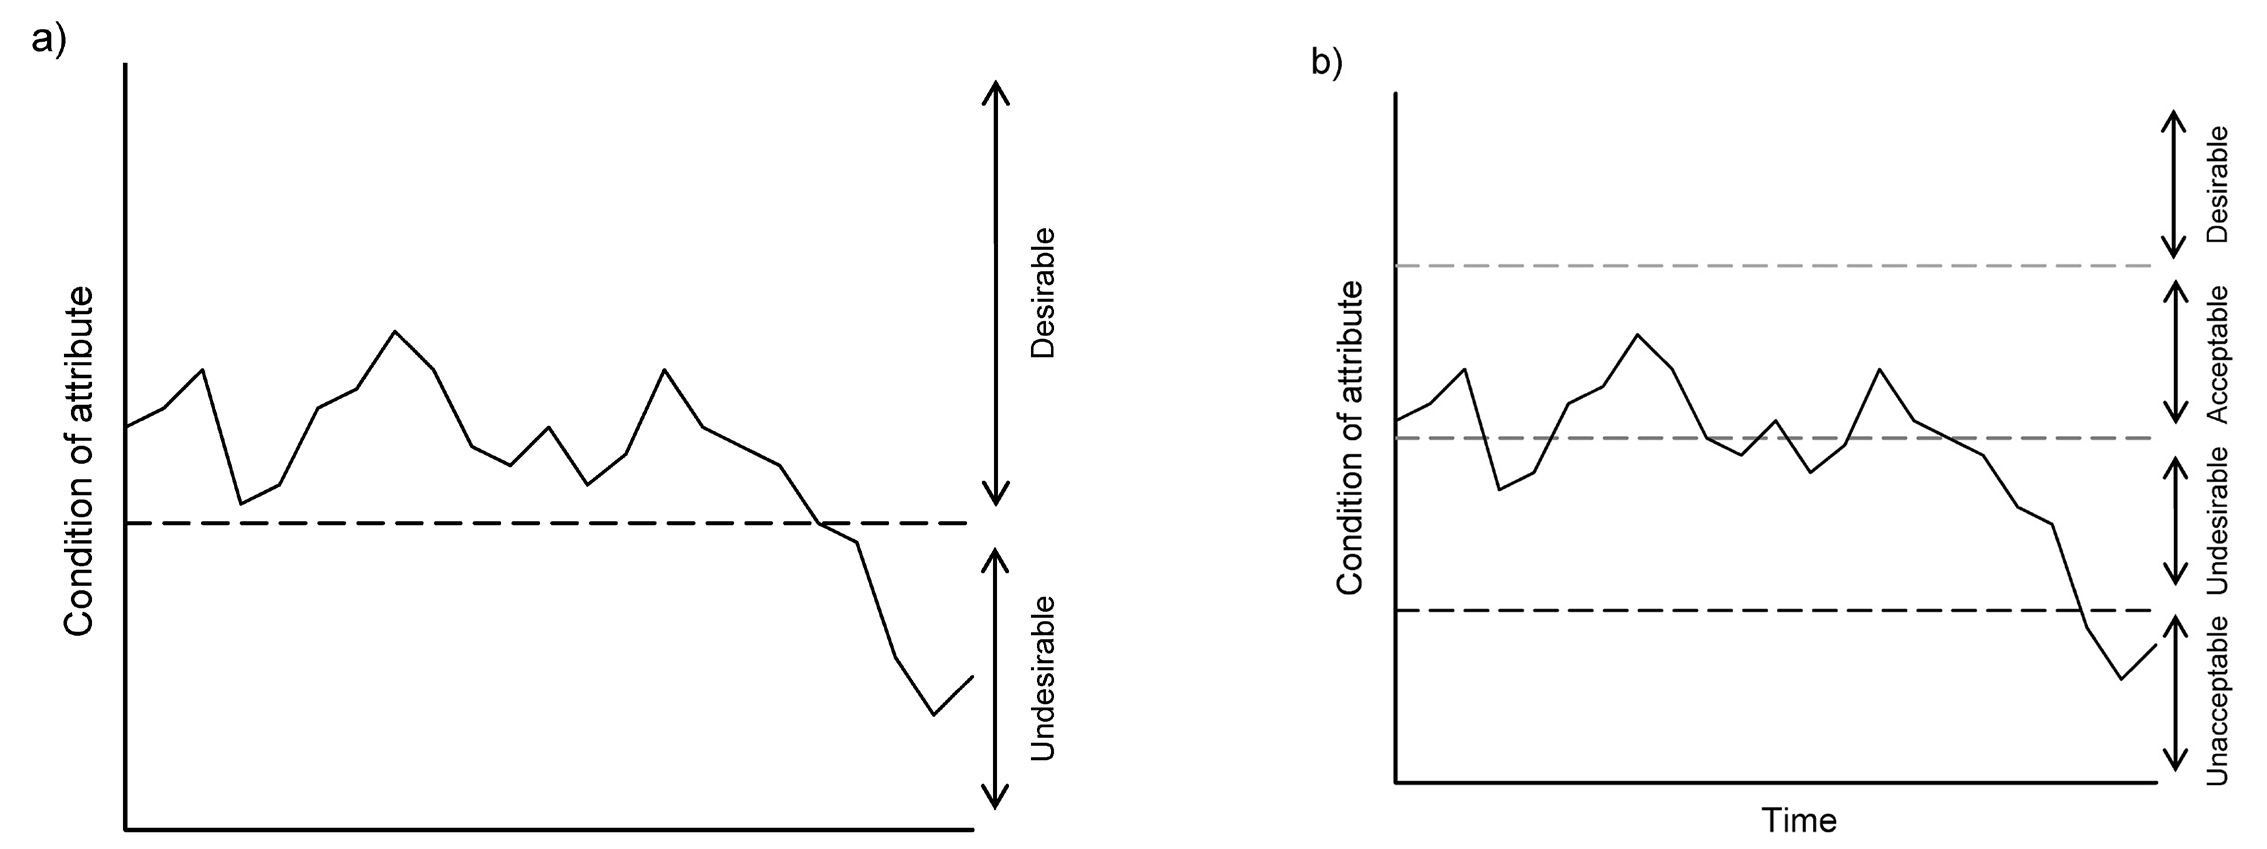 Figure 1: Decision triggers (horizontal dashed lines) representing a target for management intervention. (From Cook et al. 2016)